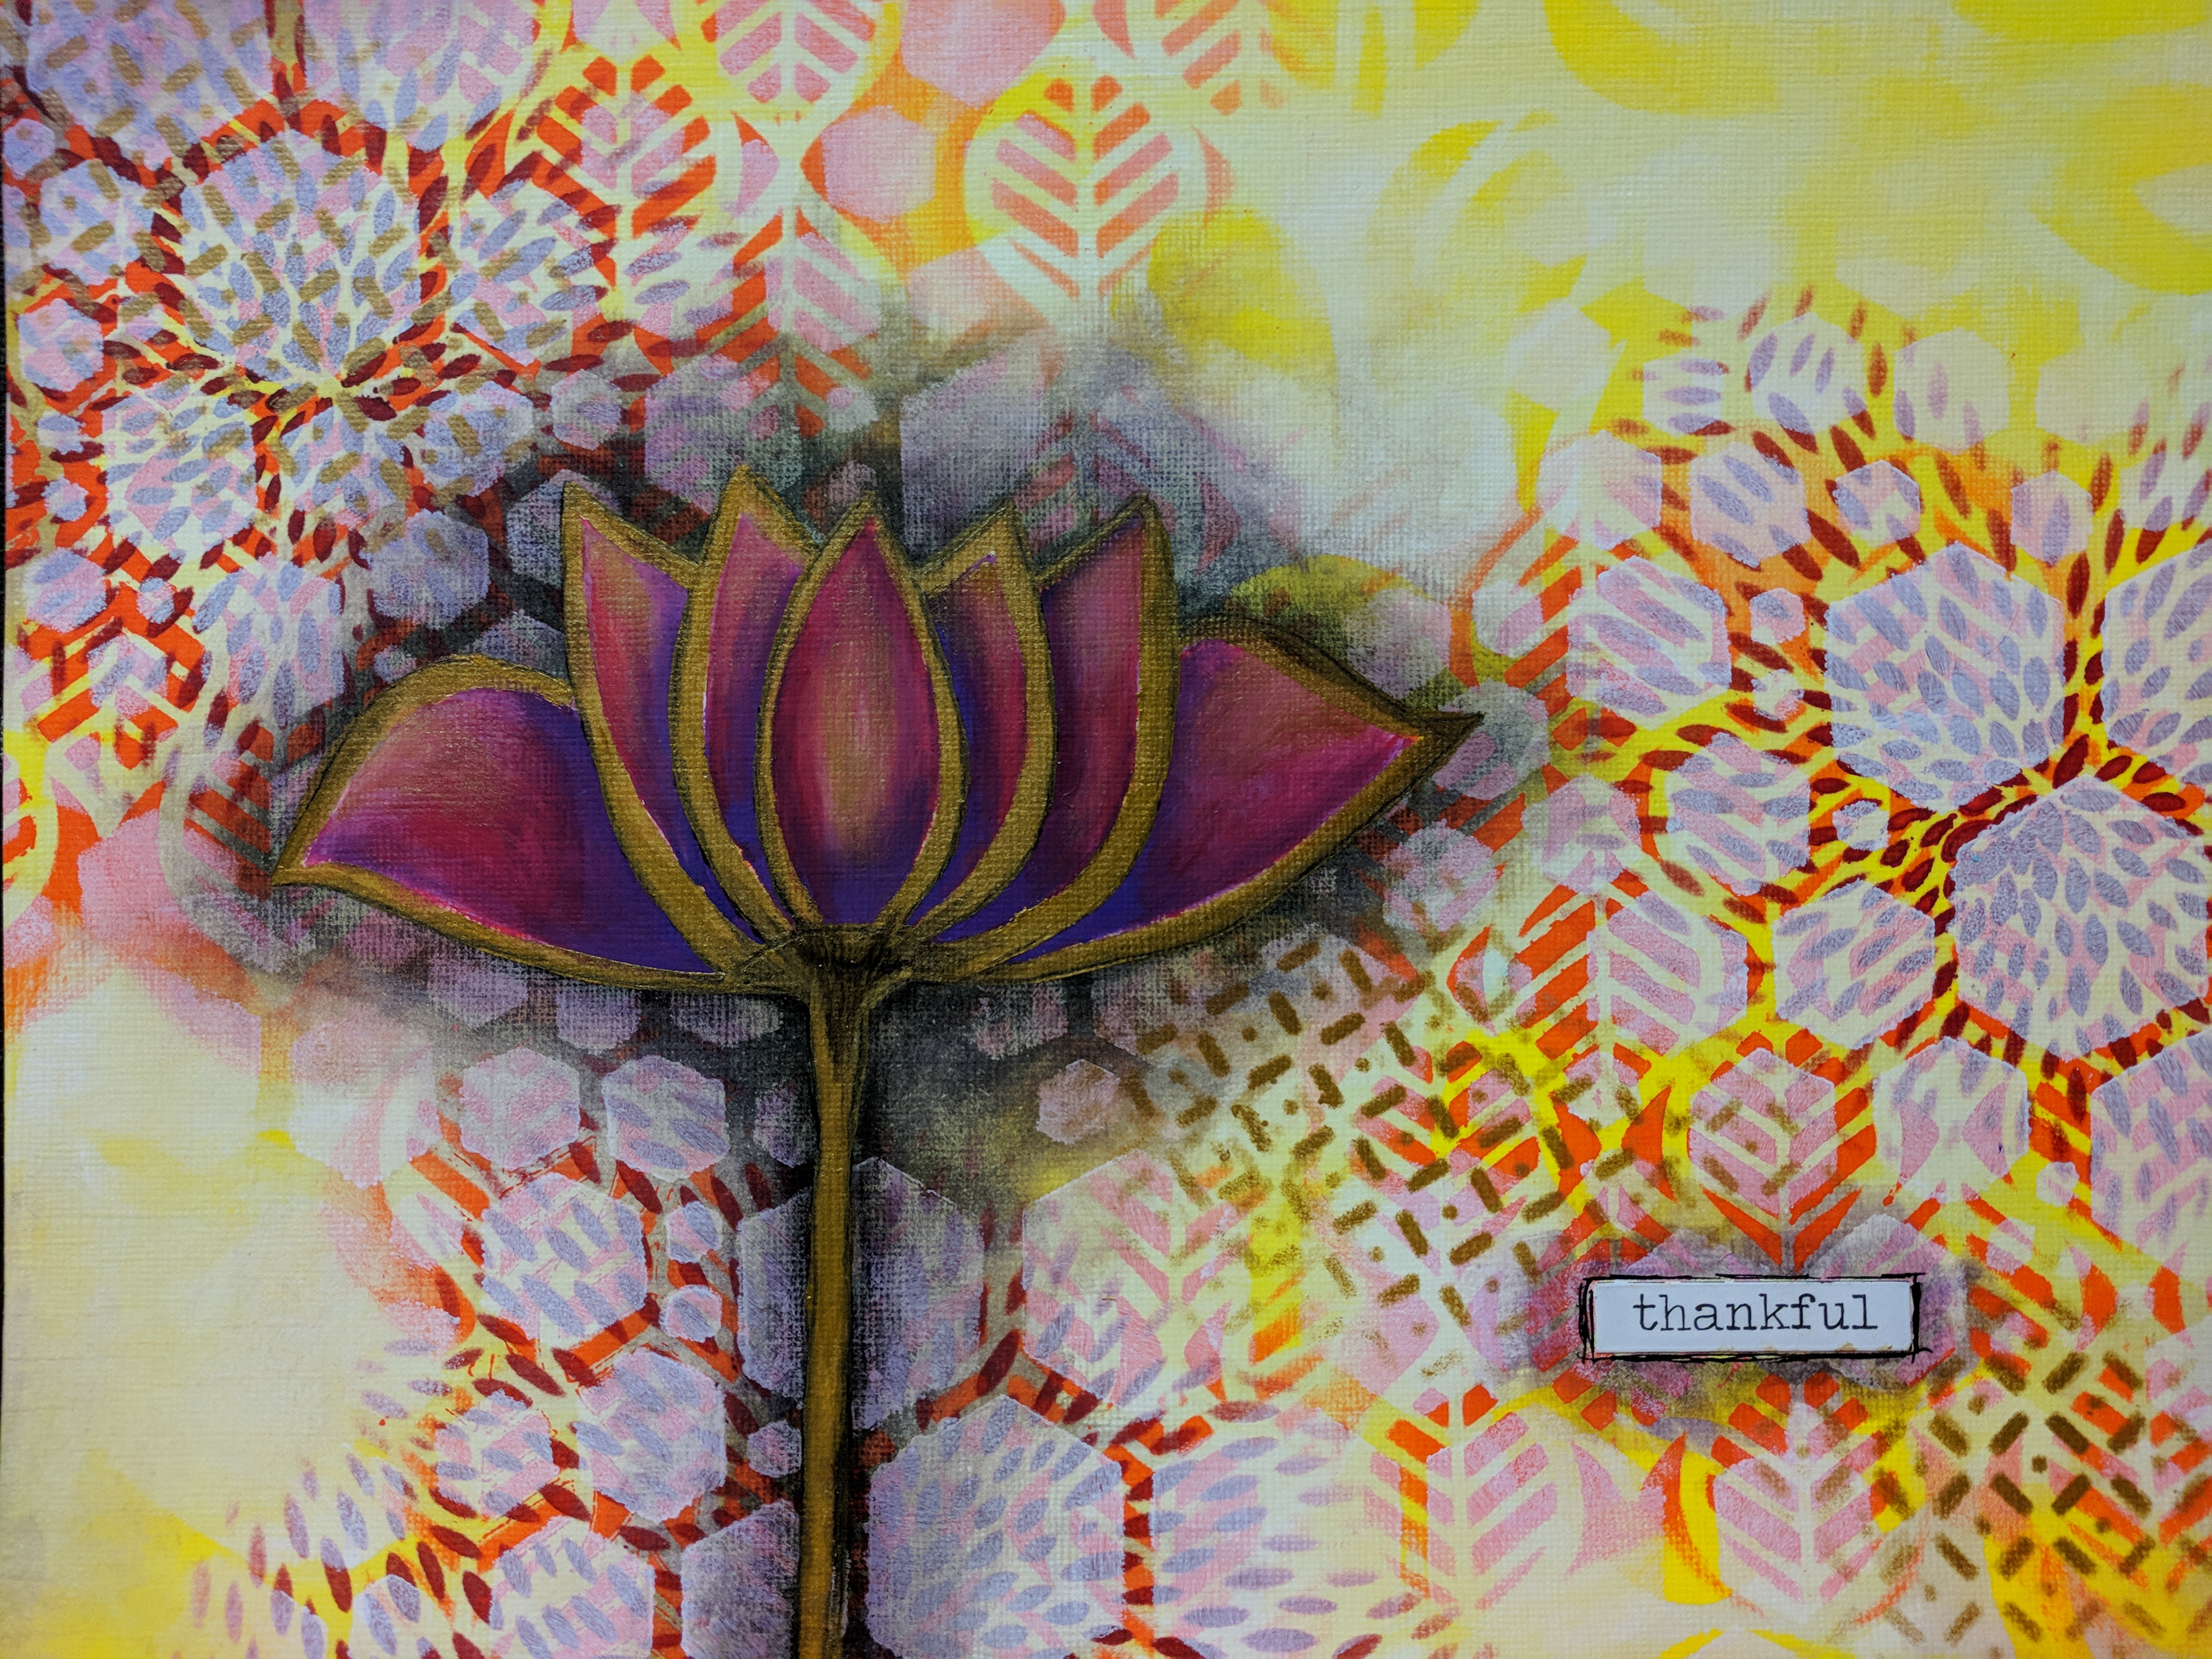 Painting from Gratitude